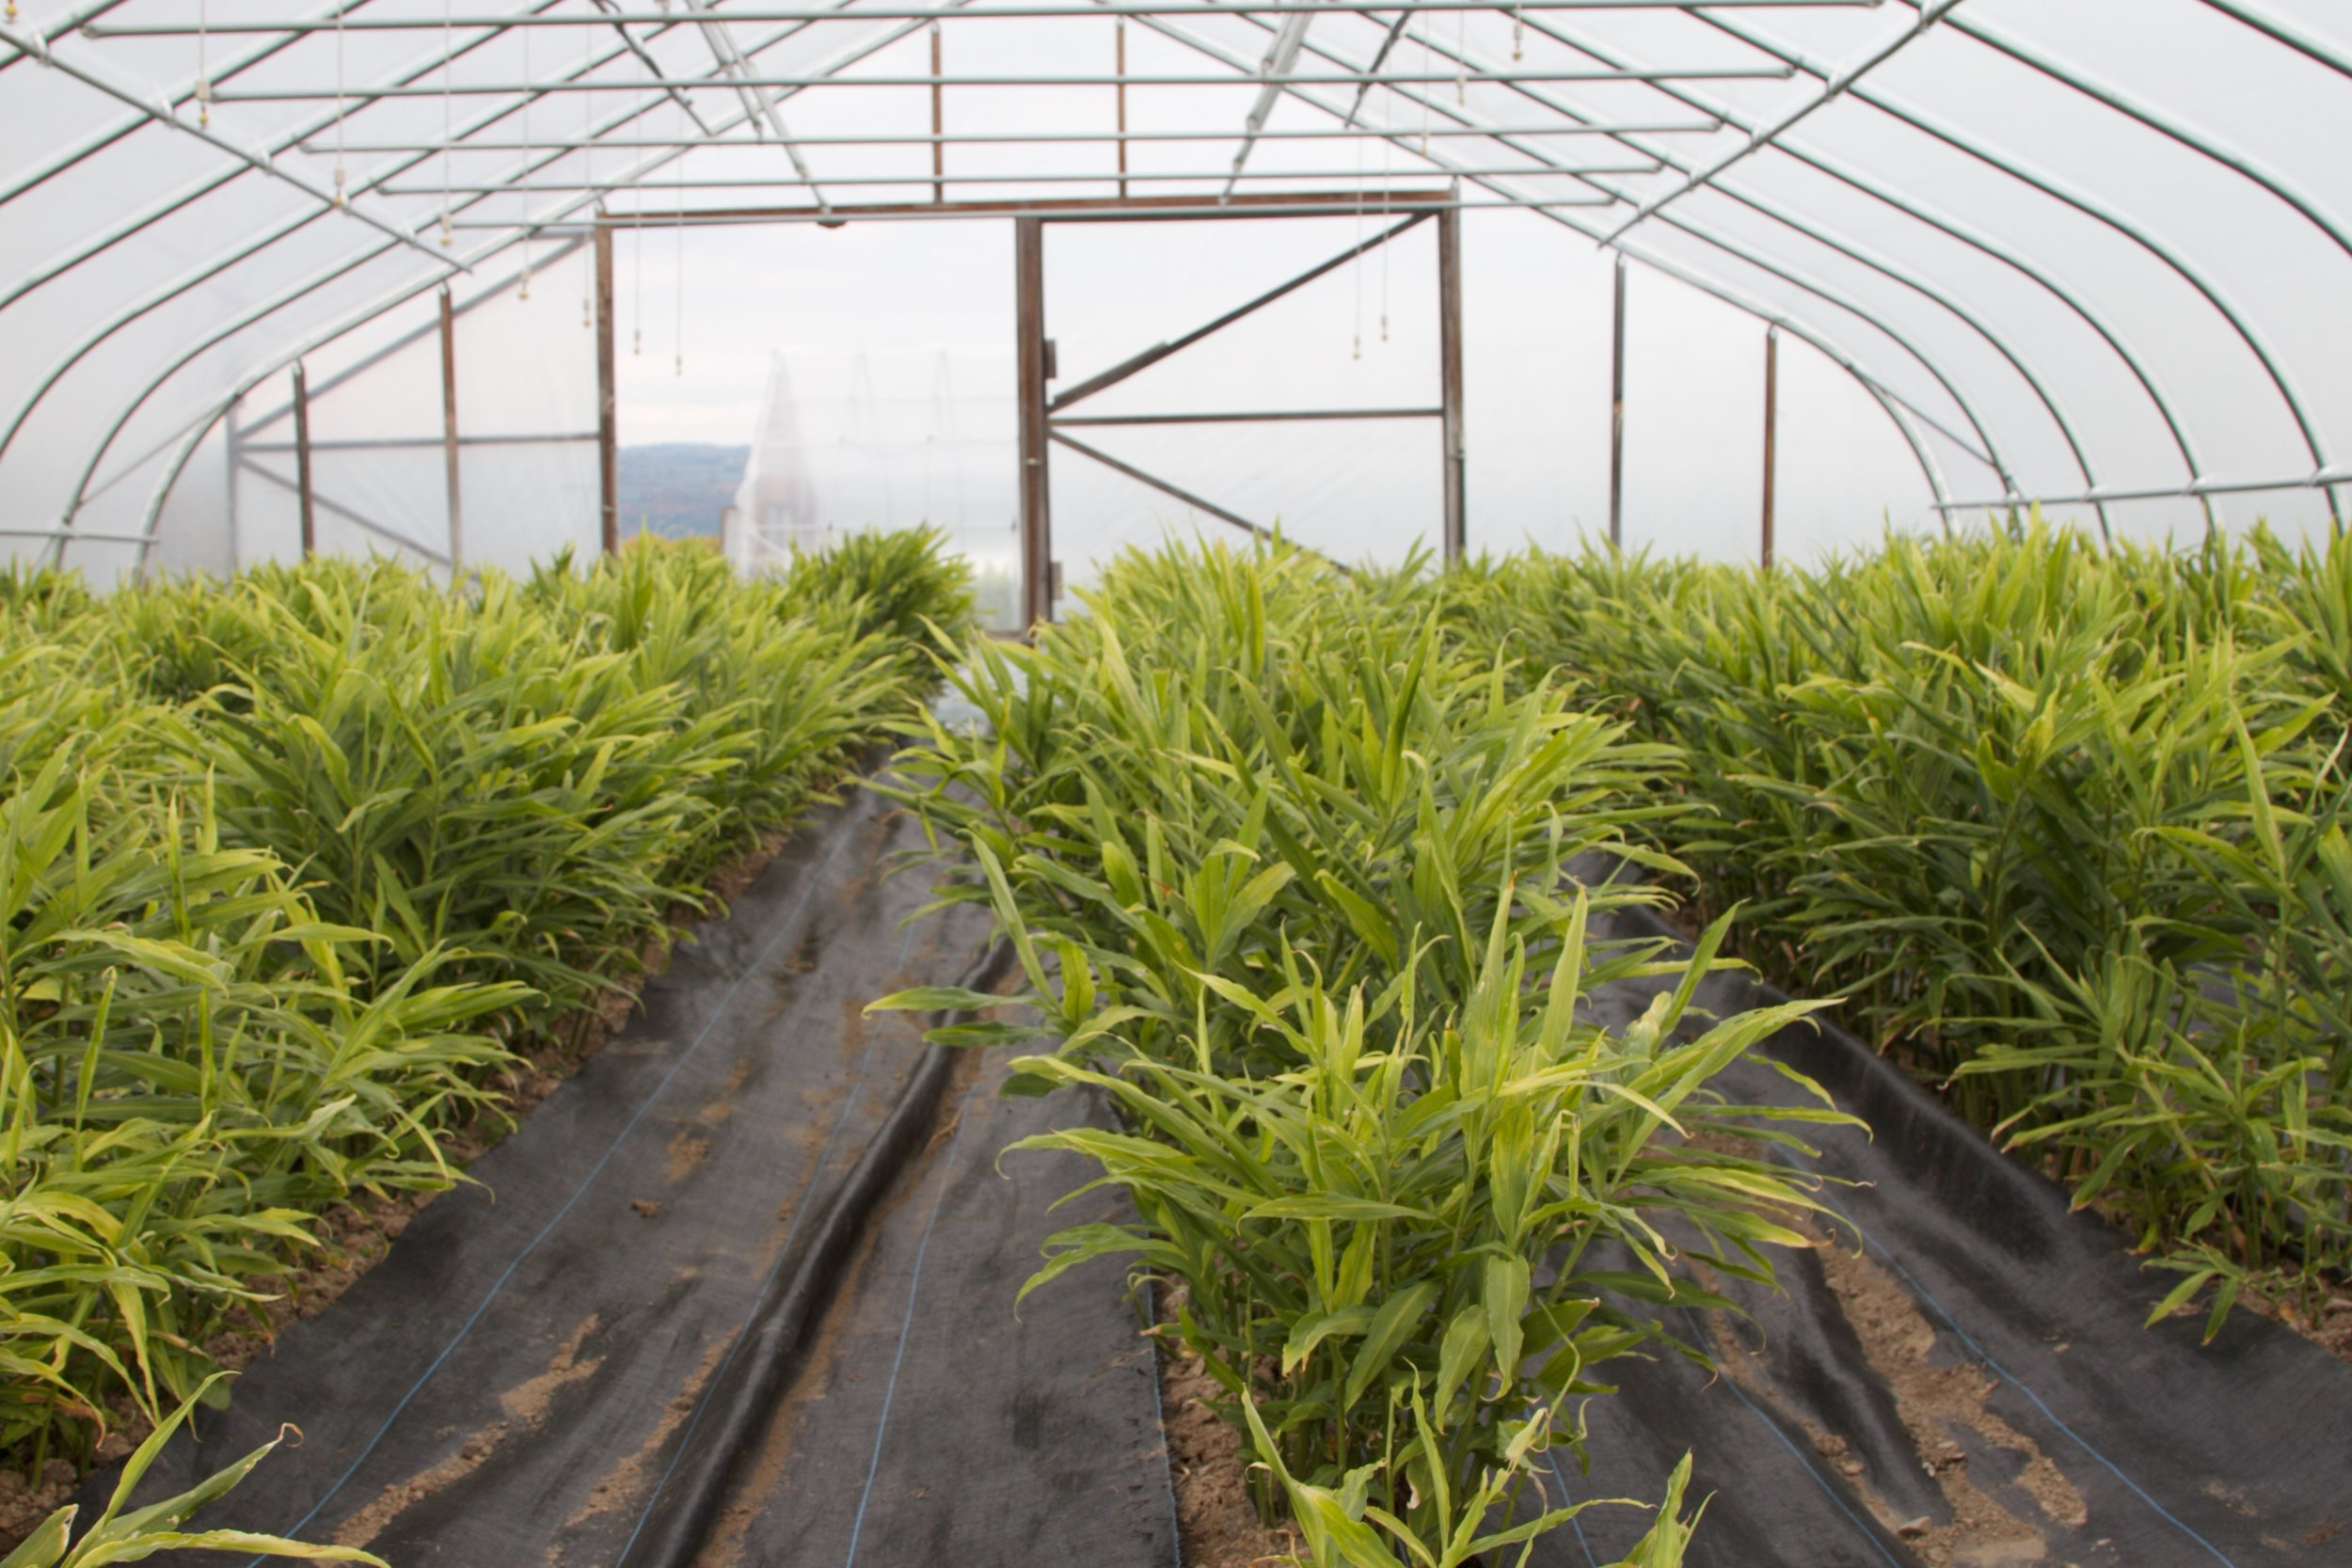 Ginger is usually a tropical crop from places like Hawaii and Peru, but it can be grown in northern climates in high-tunnels.